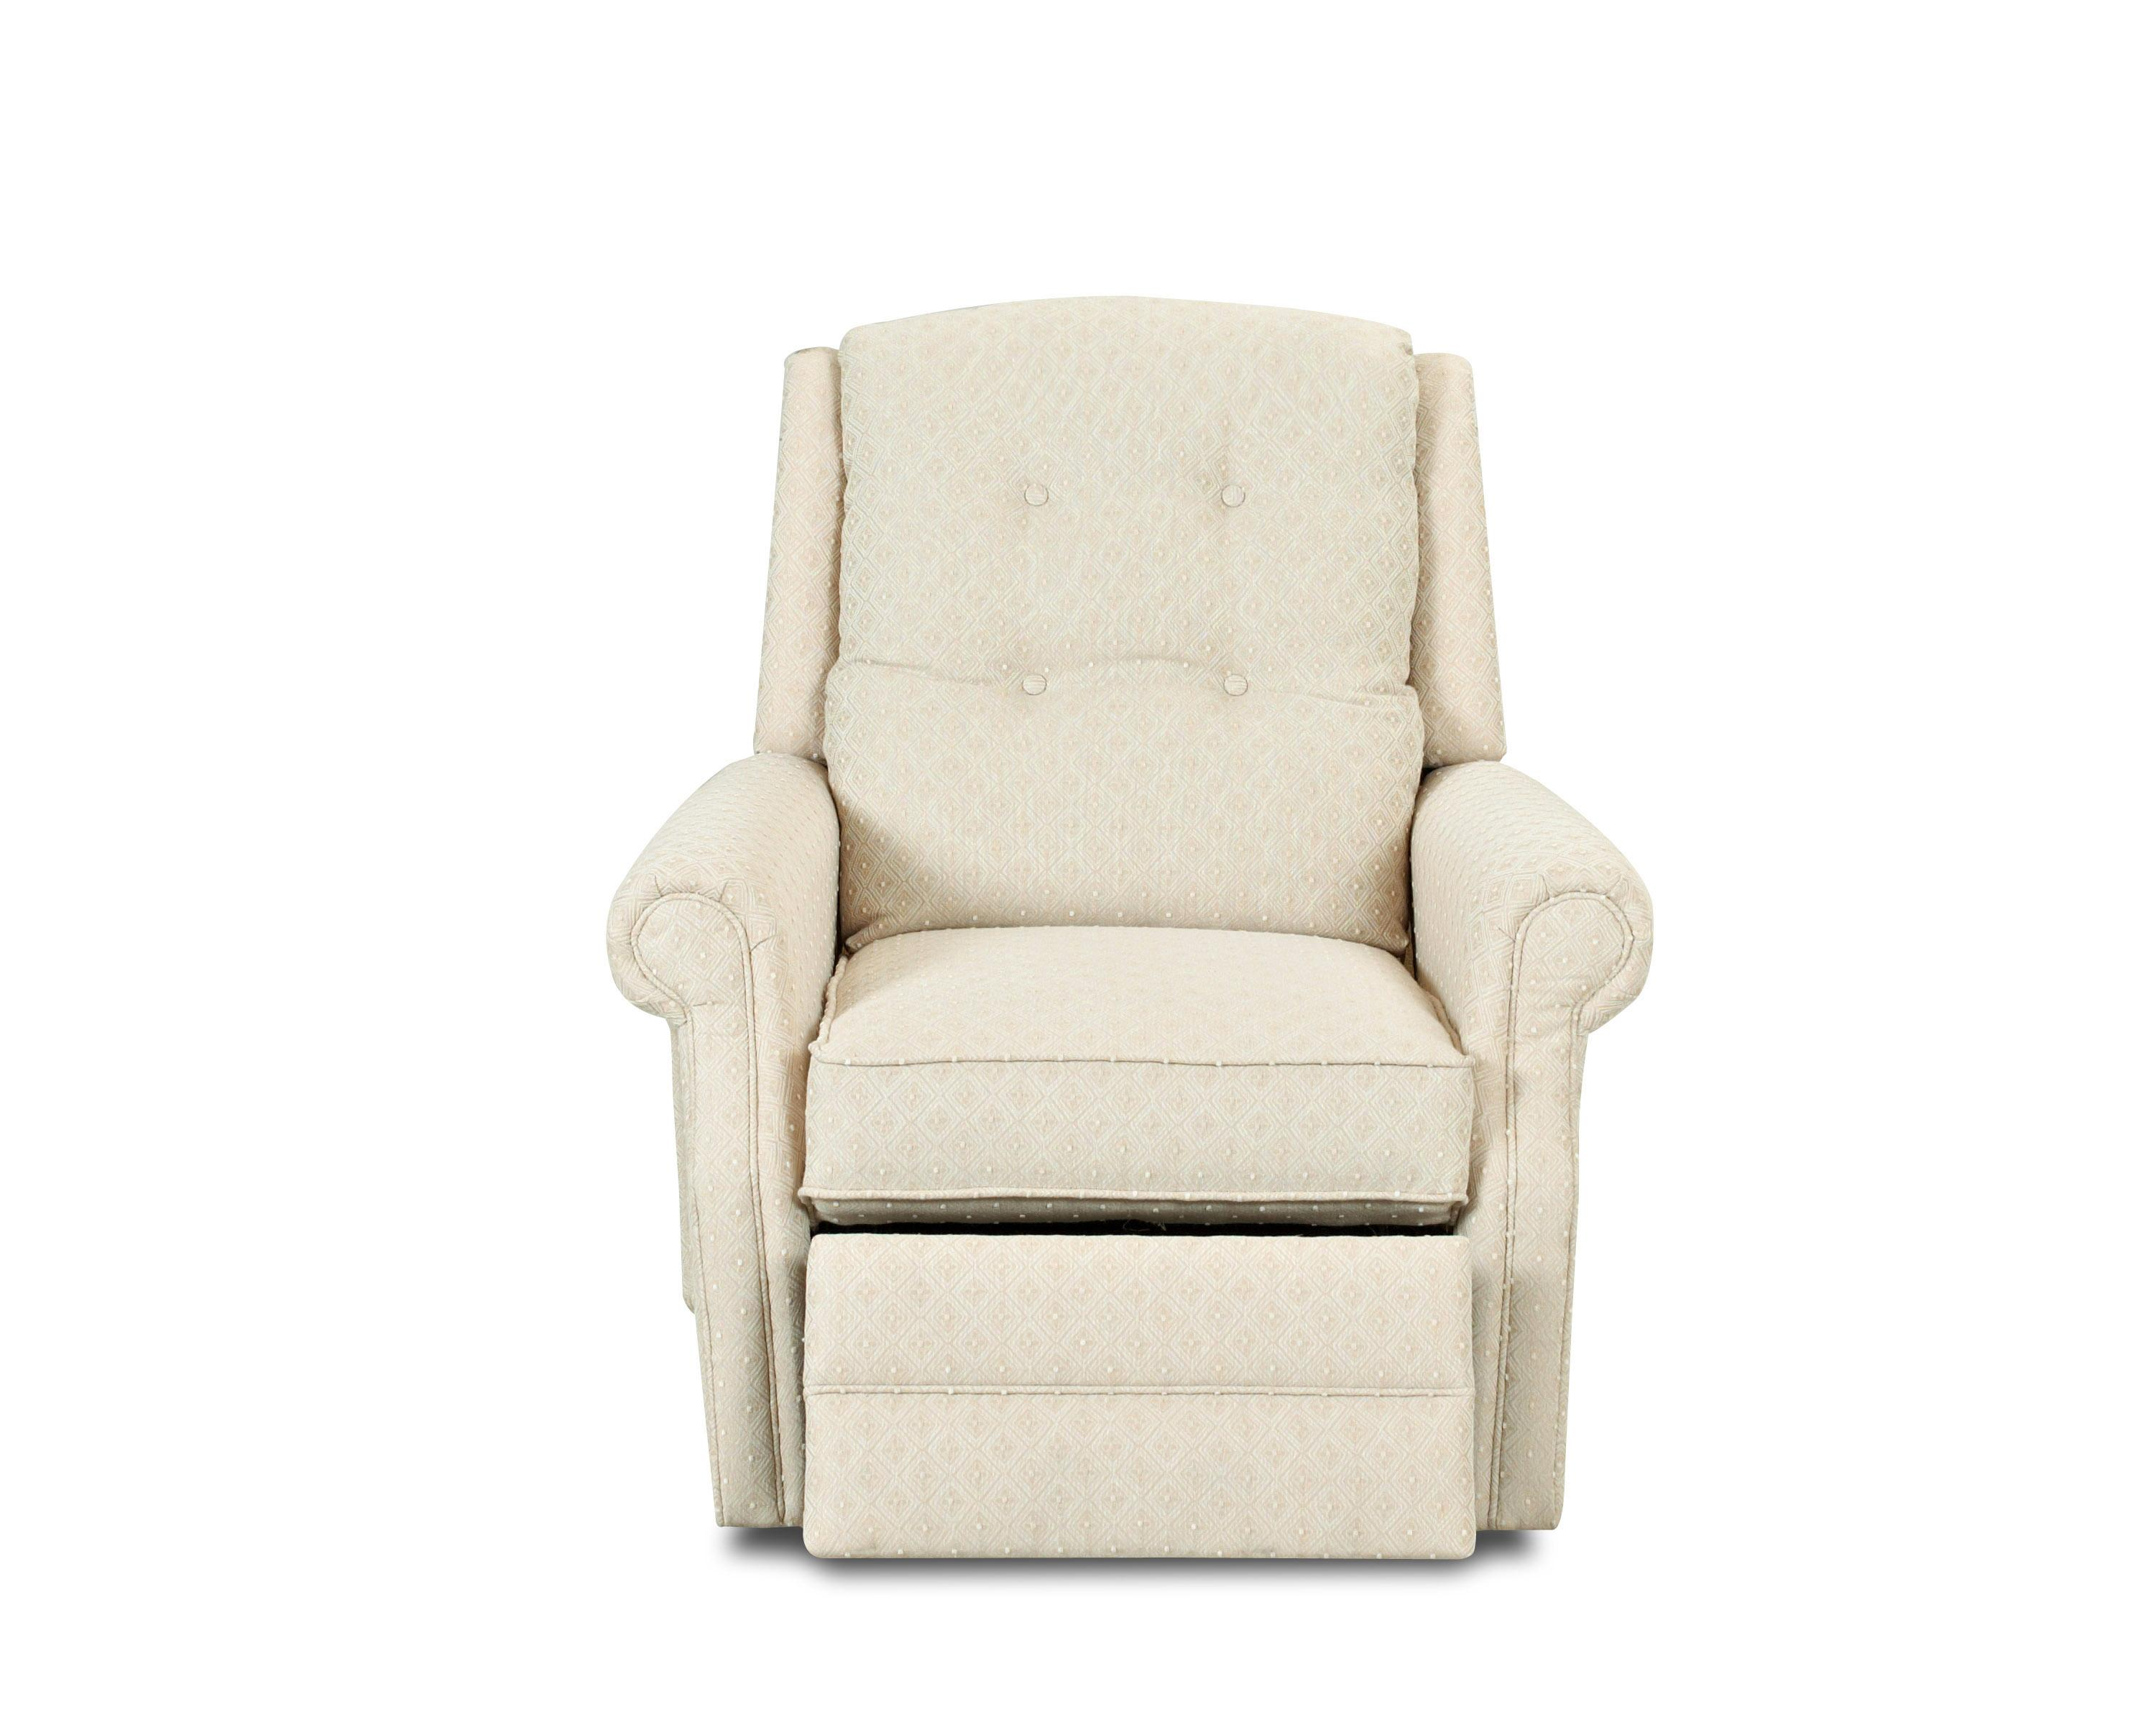 rocker and recliner chair travel high chairs transitional manual swivel rocking reclining with